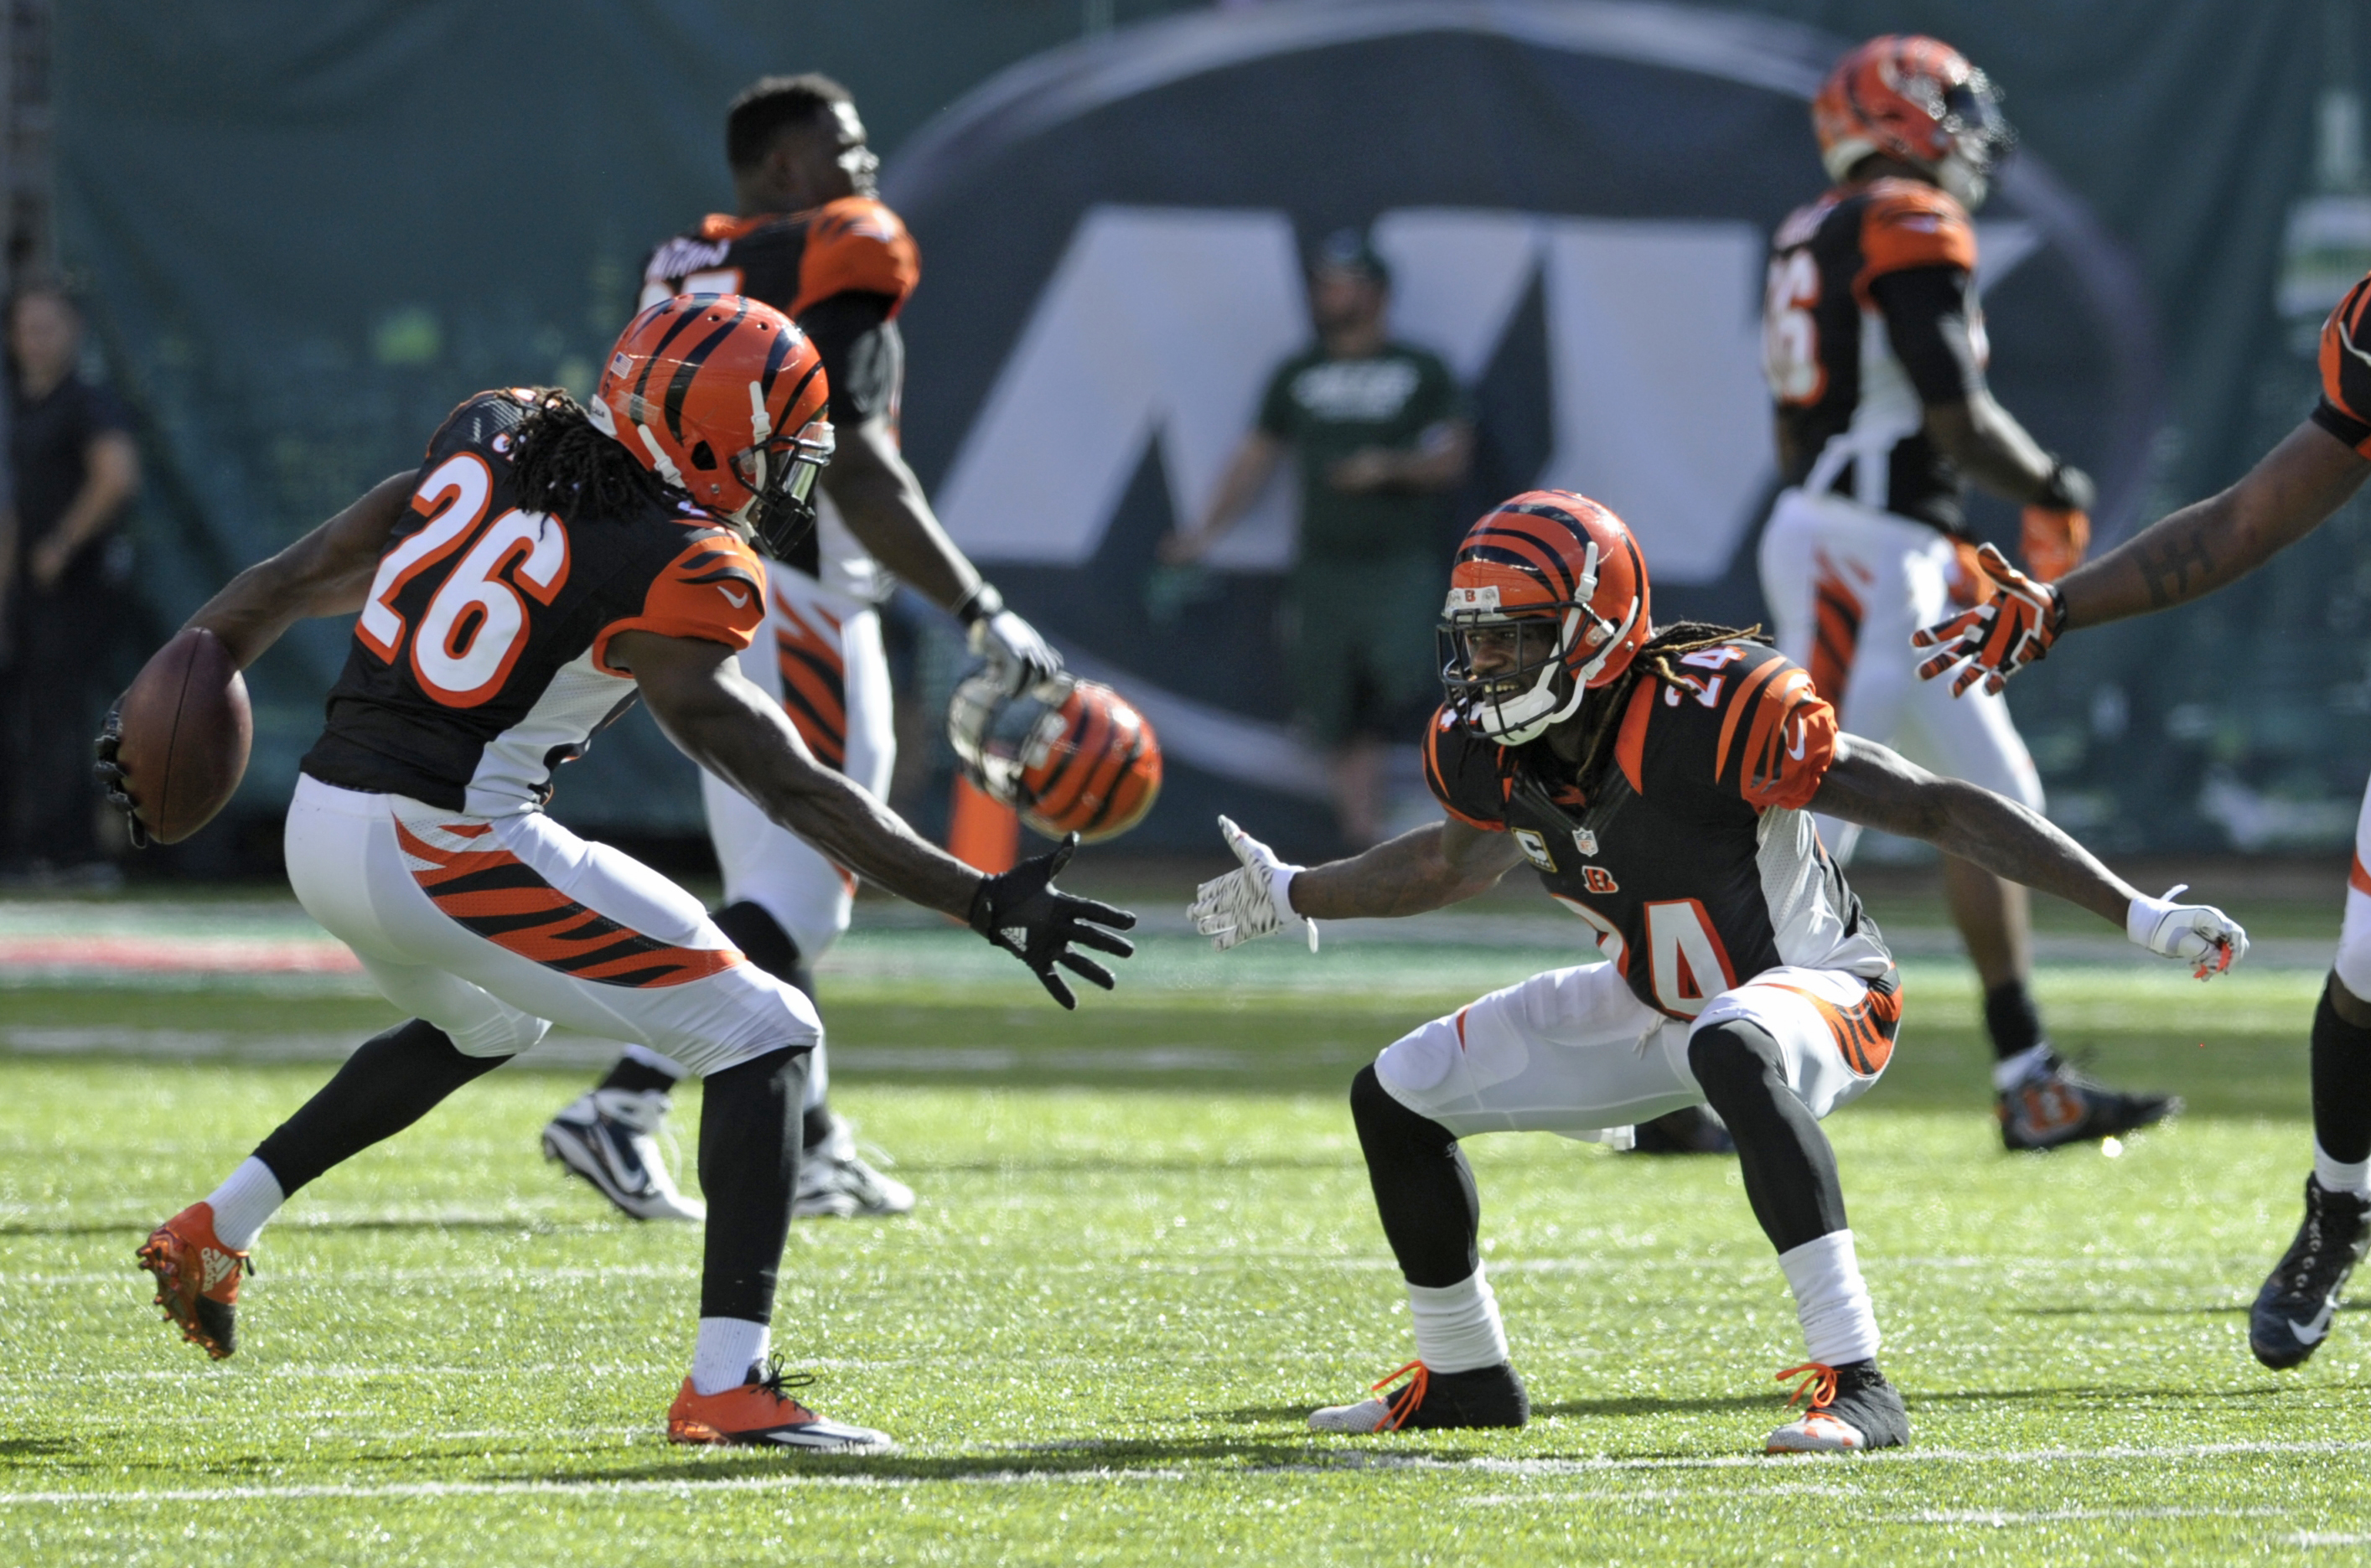 Cincinnati Bengals cornerback Josh Shaw (26) celebrates with teammate Adam Jones (24) after intercepting a pass during the second half of an NFL football game Sunday, Sept. 11, 2016 in East Rutherford, N.J. The Bengals won 23-22. (AP Photo/Bill Kostroun)